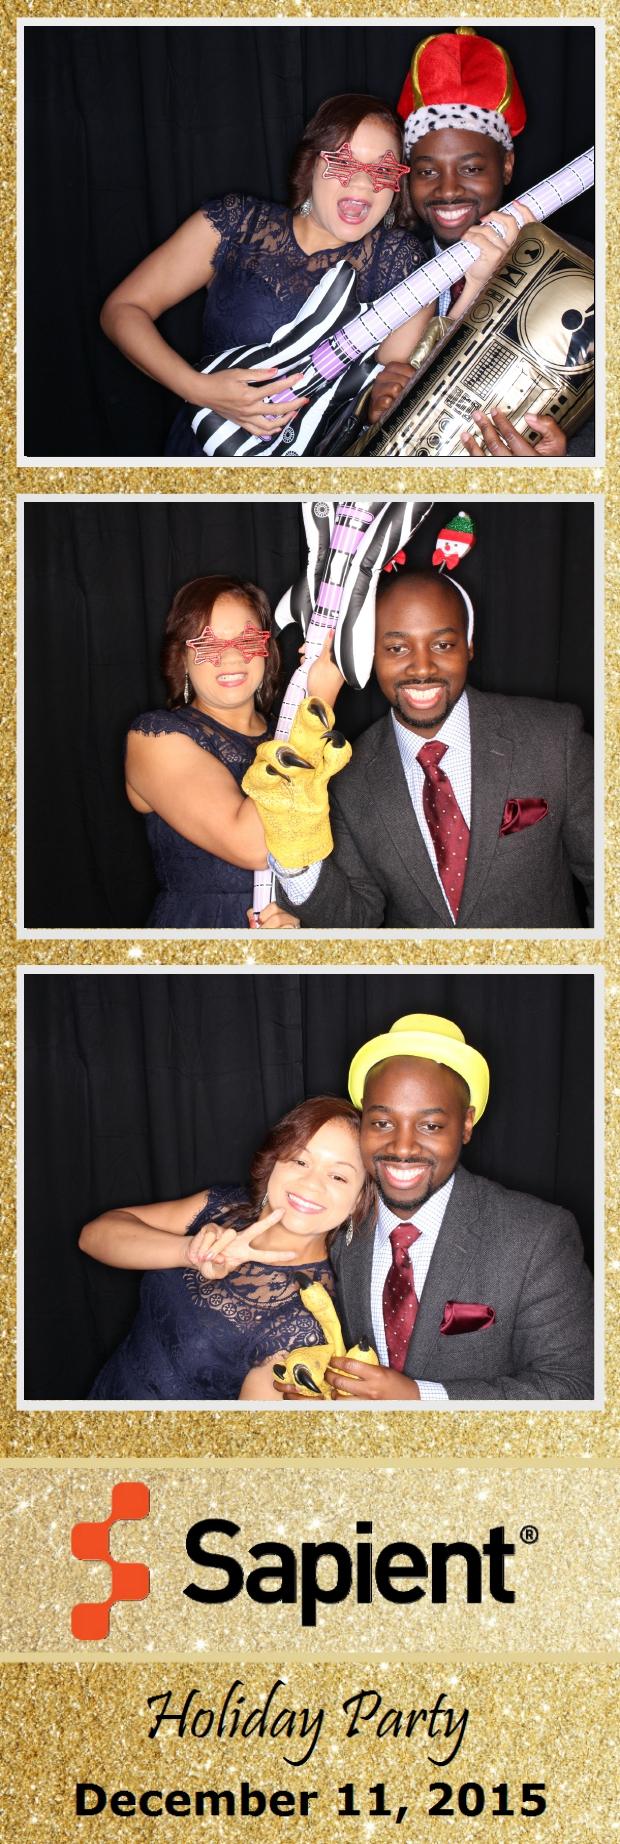 Guest House Events Photo Booth Sapient Holiday Party (41).jpg